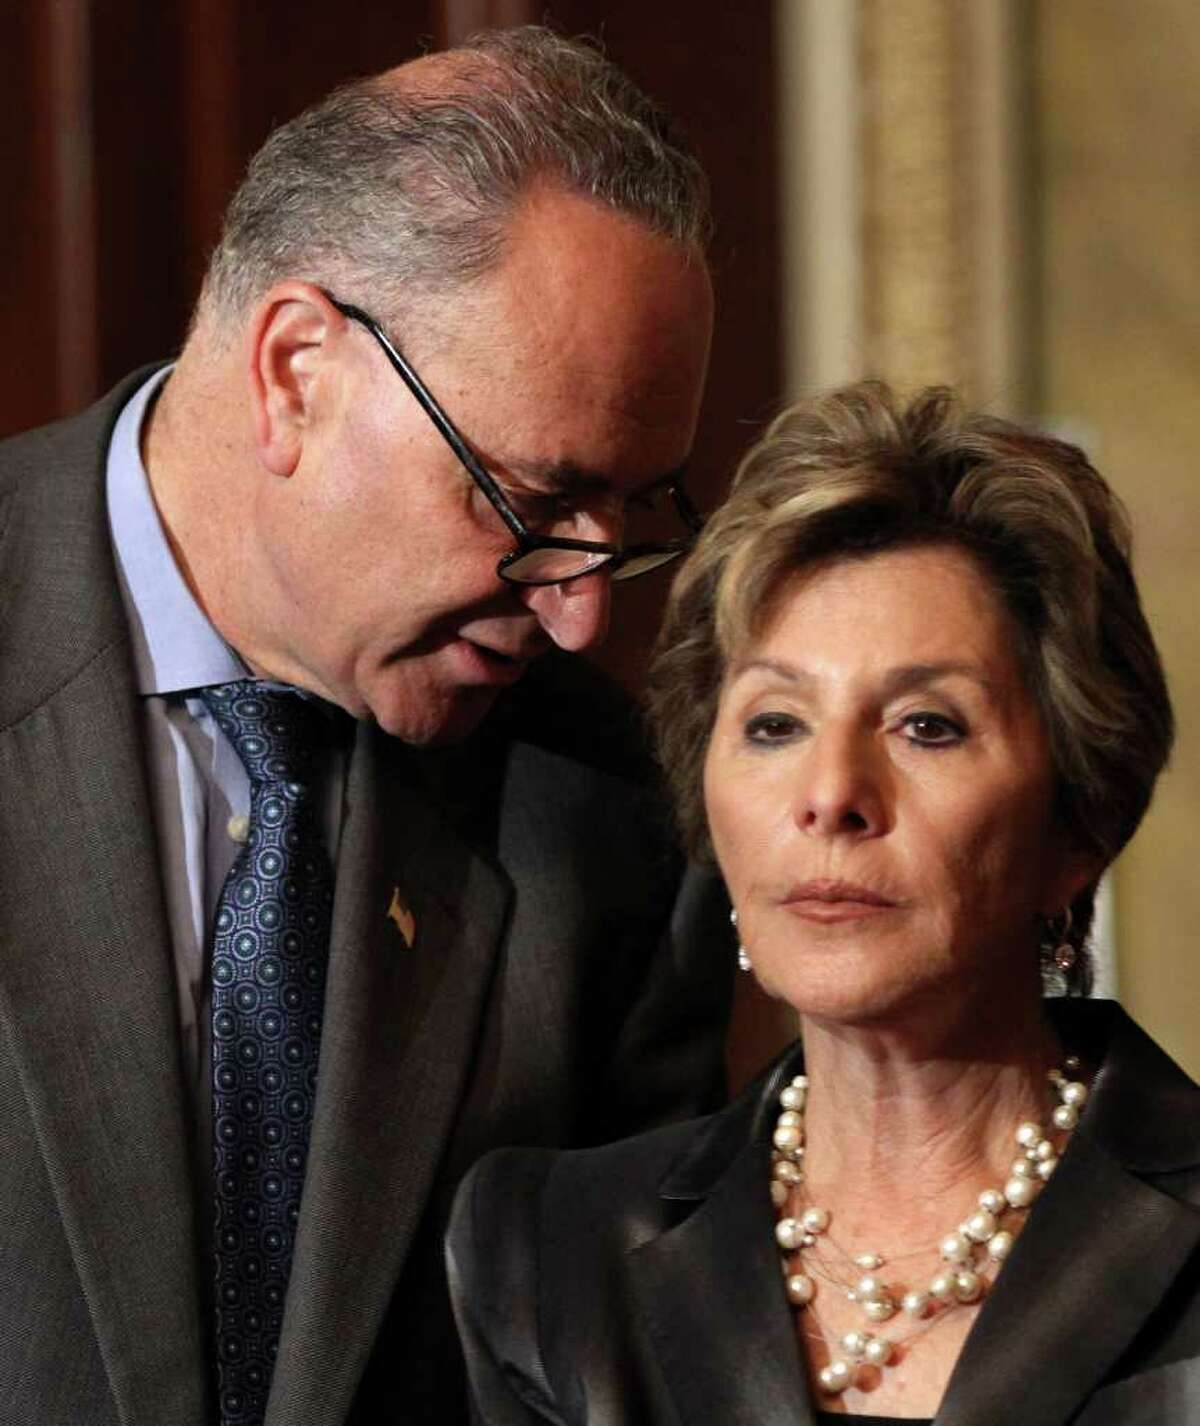 Sen. Charles Schumer, D-N.Y. talks with Sen. Barbara Boxer, D-Calif. during a news conference on Capitol Hill in Washington, Wednesday, March 21, 2012, to urge the House to pass a bipartisan transportation bill. (AP Photo/Jacquelyn Martin)